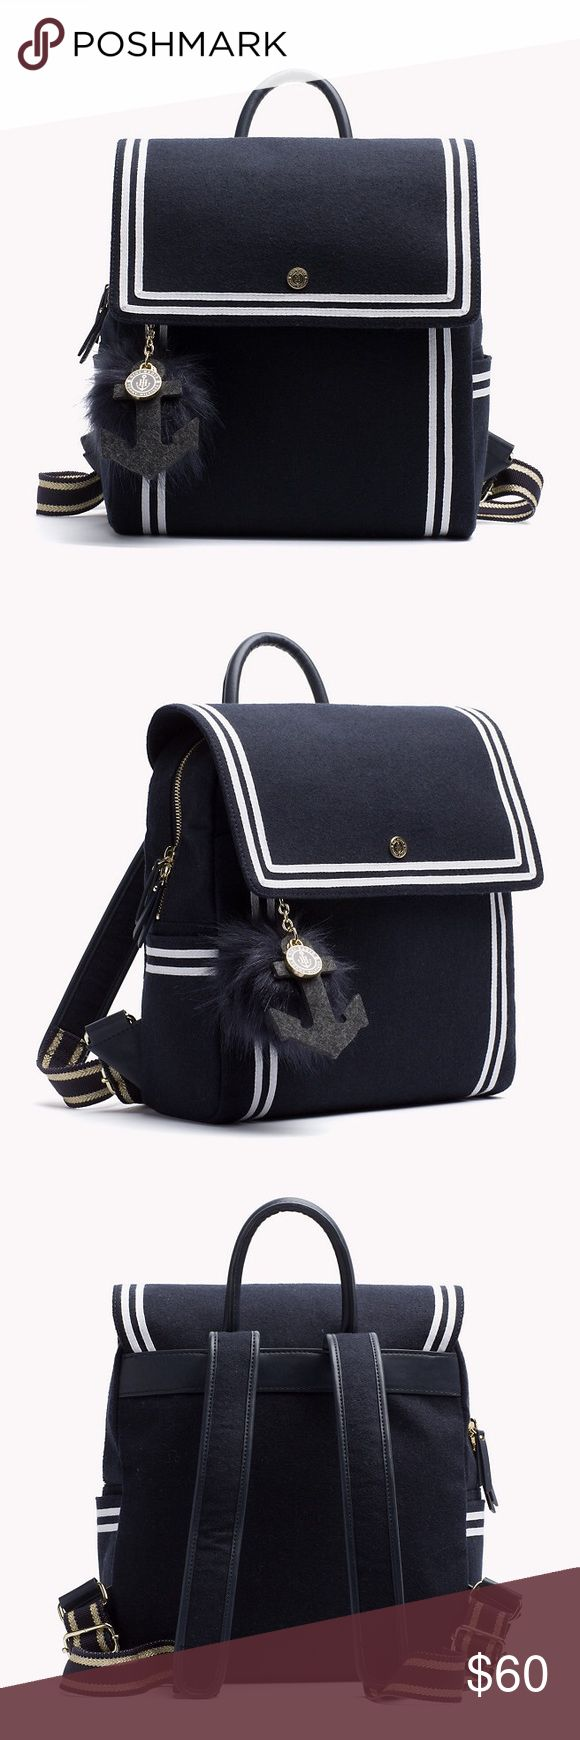 Nautical mini backpack Sail into trend right style with Tommy x Gigi nautical themed mini backpack Tommy Hilfiger Bags Backpacks